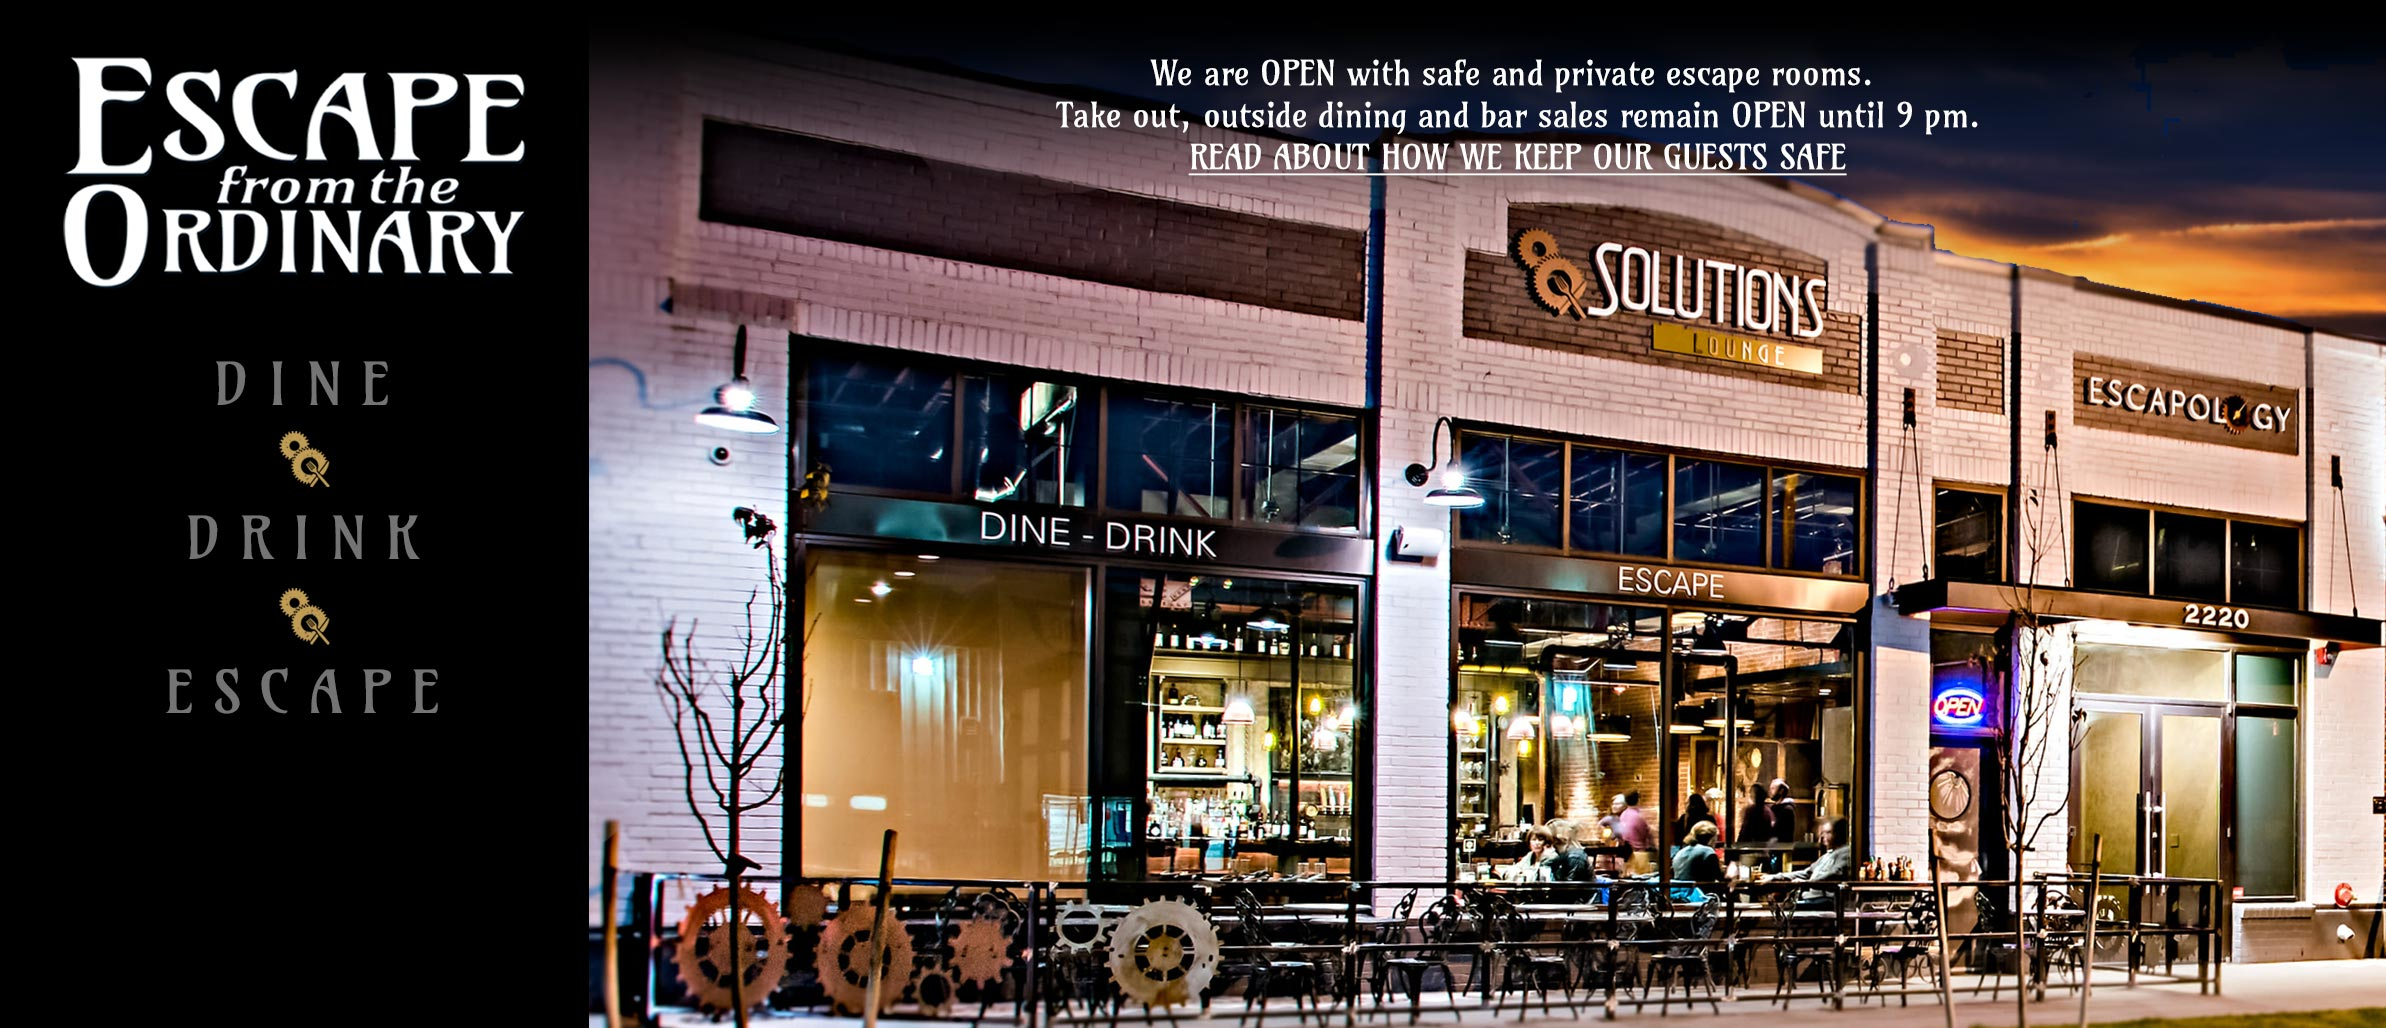 Solutions Restaurant Exterior photo and home page image